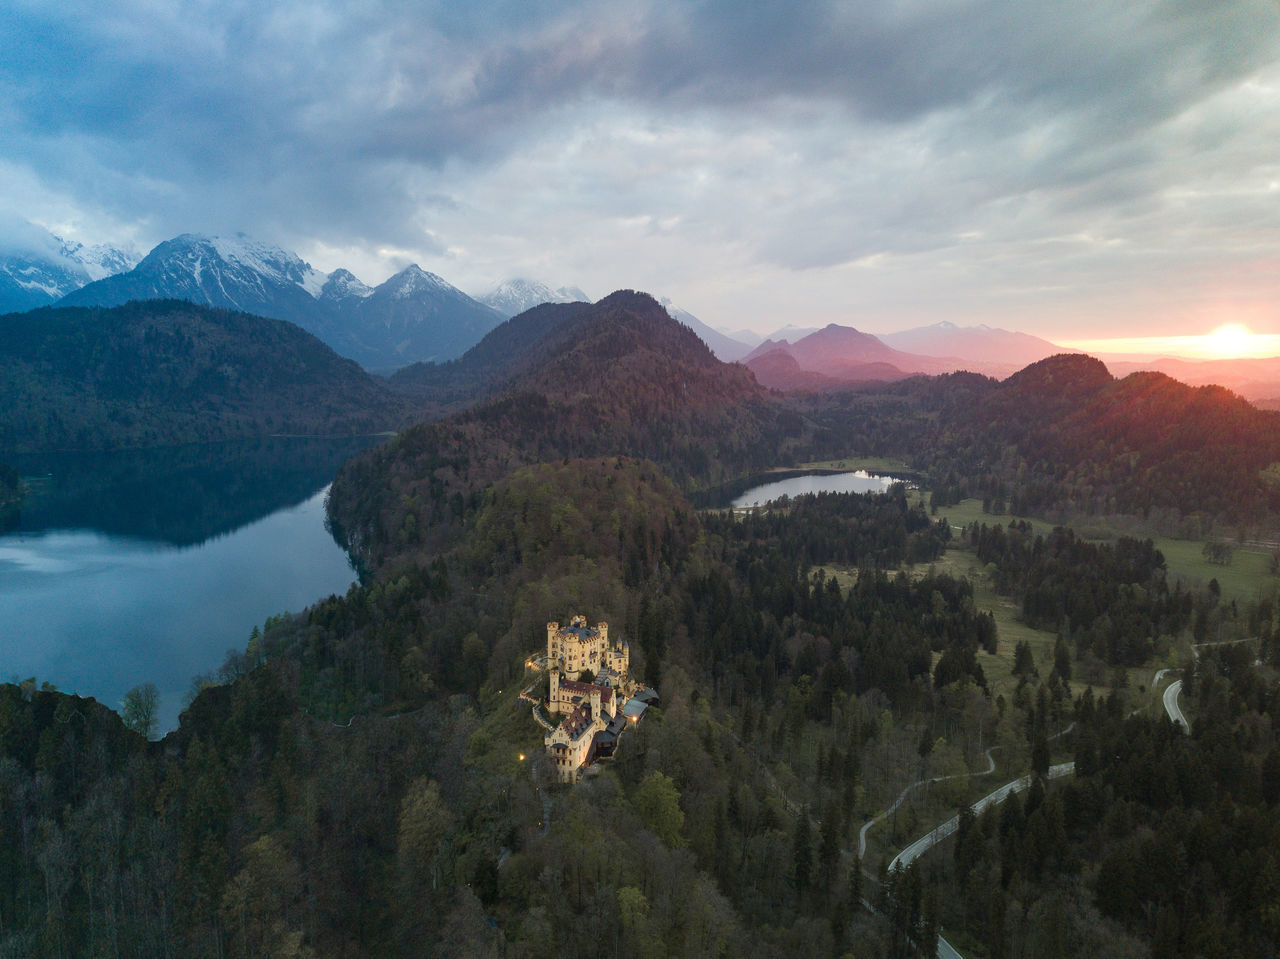 Warm vs.Cold Beauty In Nature Cold Temperature Day DJI Mavic Pro Dronephotography Landscape Mountain Mountain Range Nature No People Outdoors Scenics Sky Sunset Tranquil Scene Tranquility Travel Destinations Warm Colors